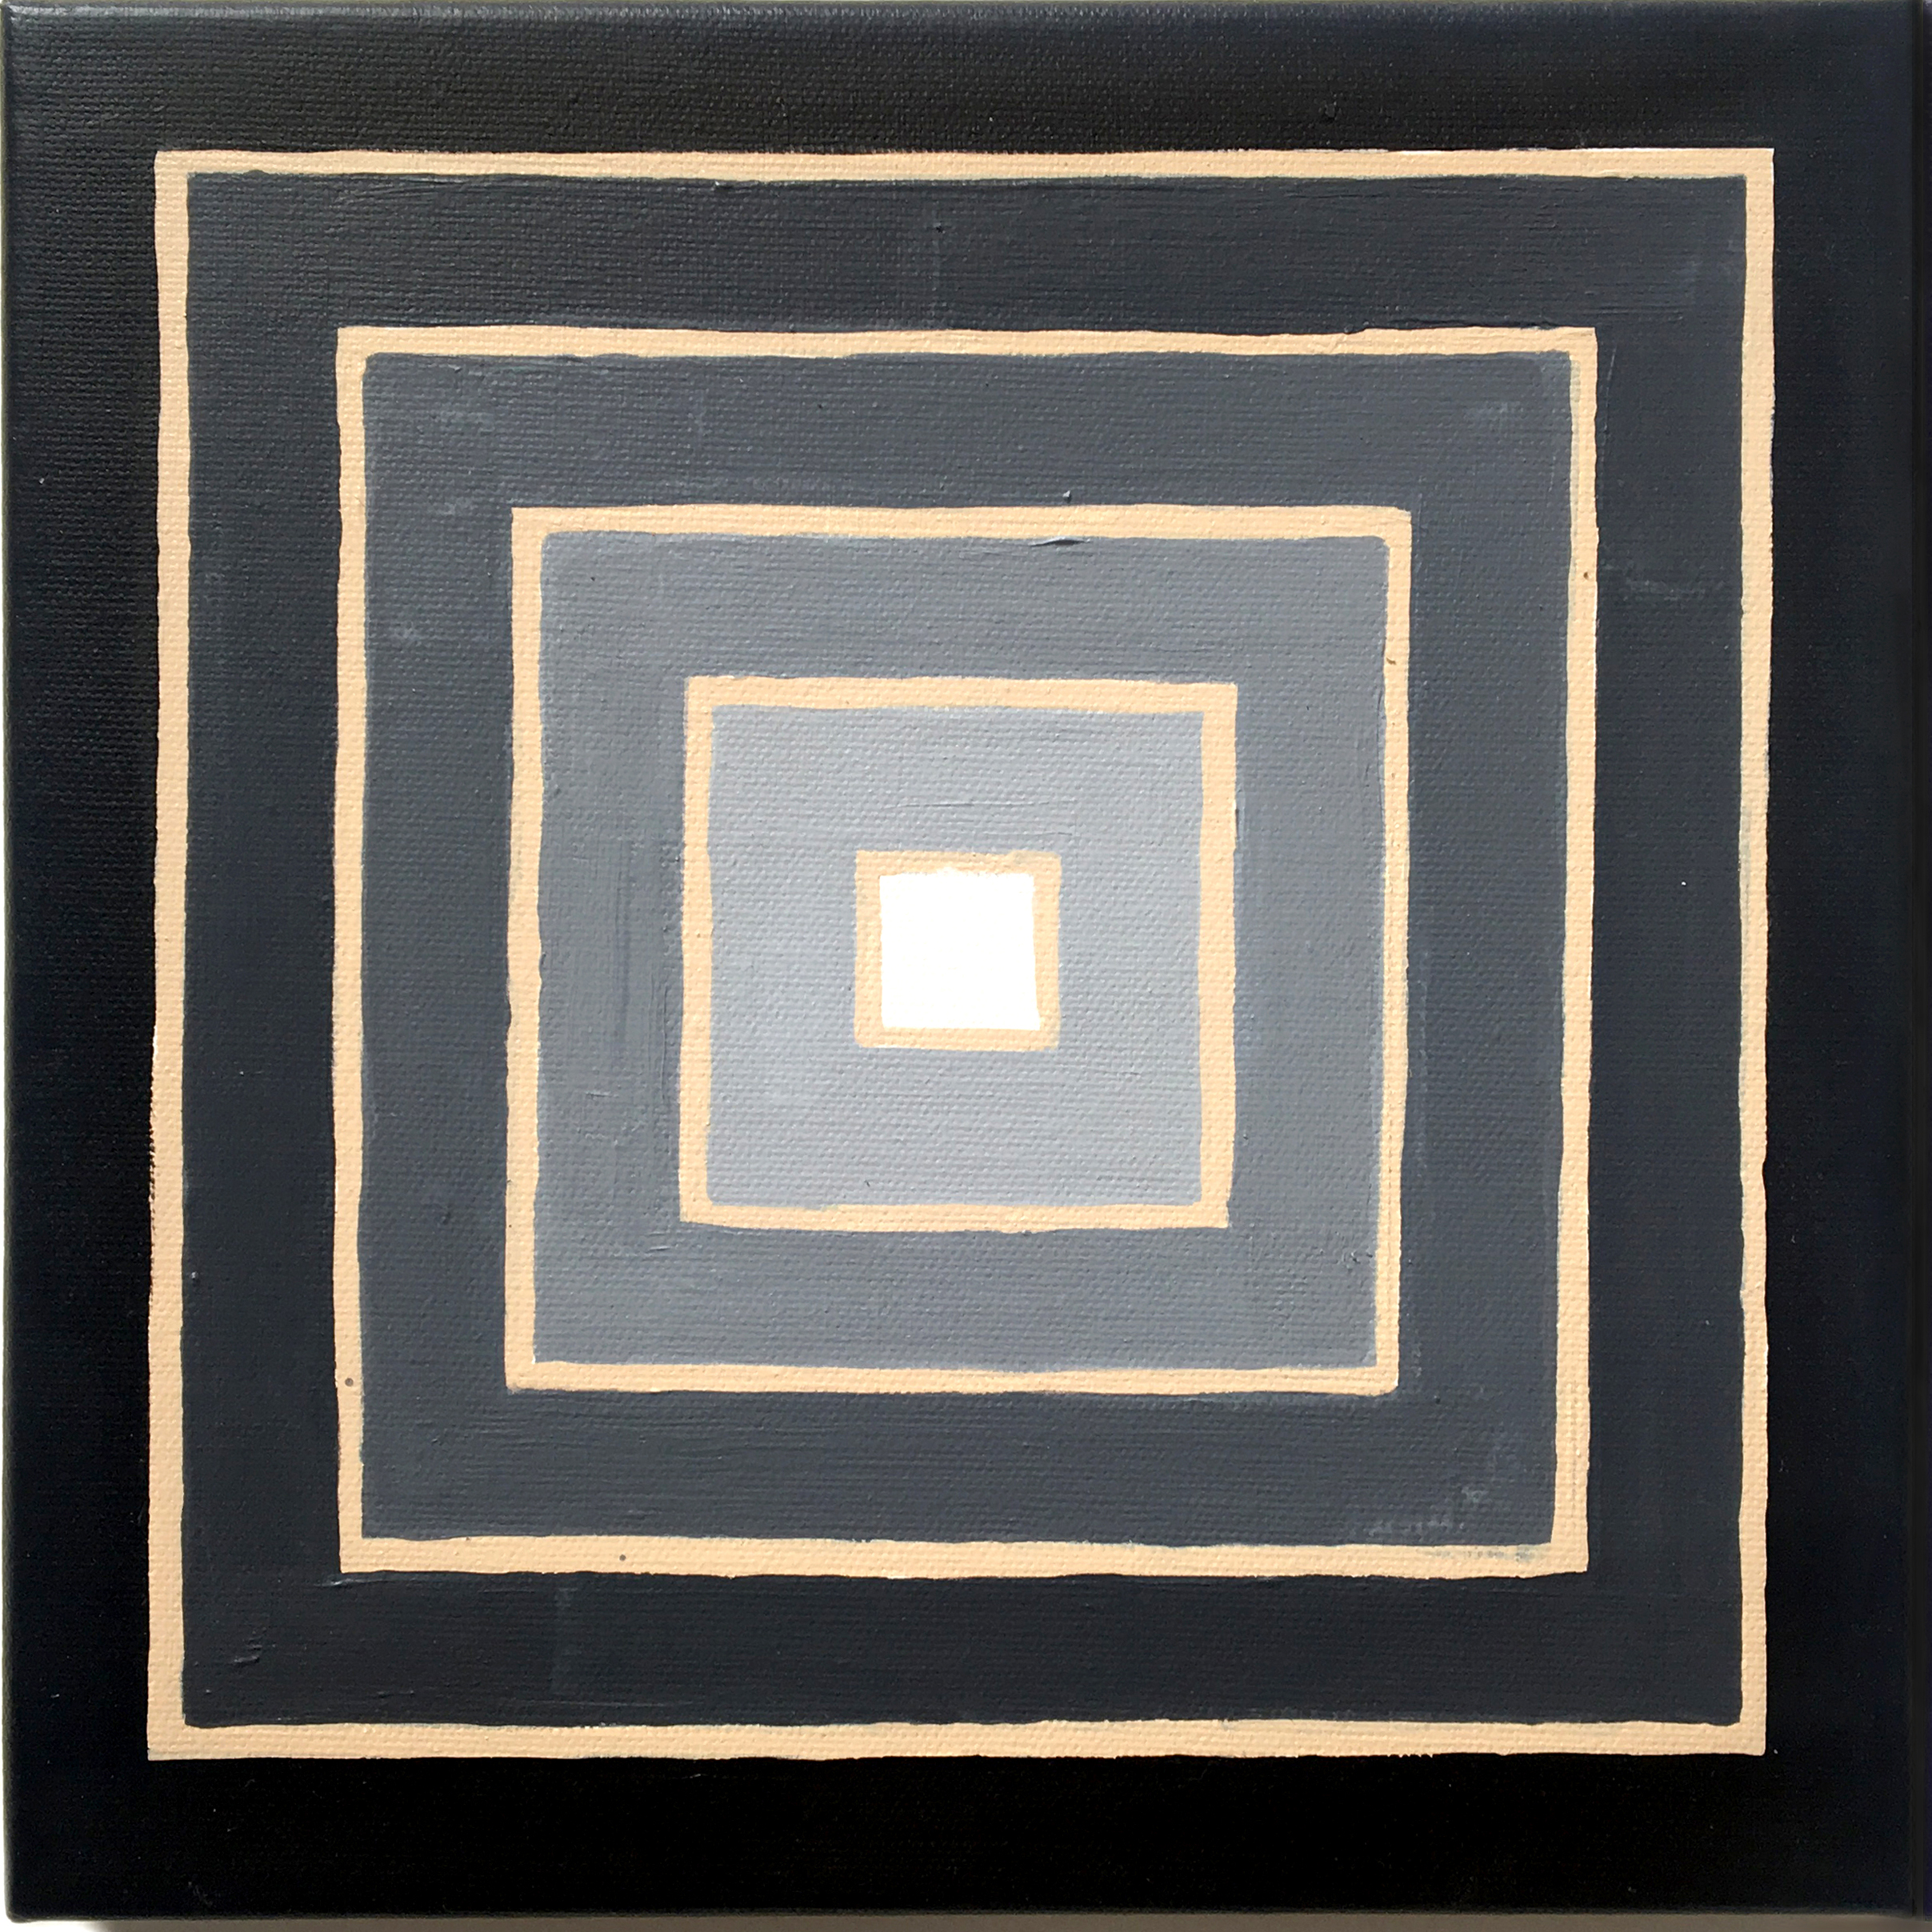 Frank Stella (3), 2019,  Acrylic on canvas,  10 x 10 inches,  25.4 x 25.4 cm